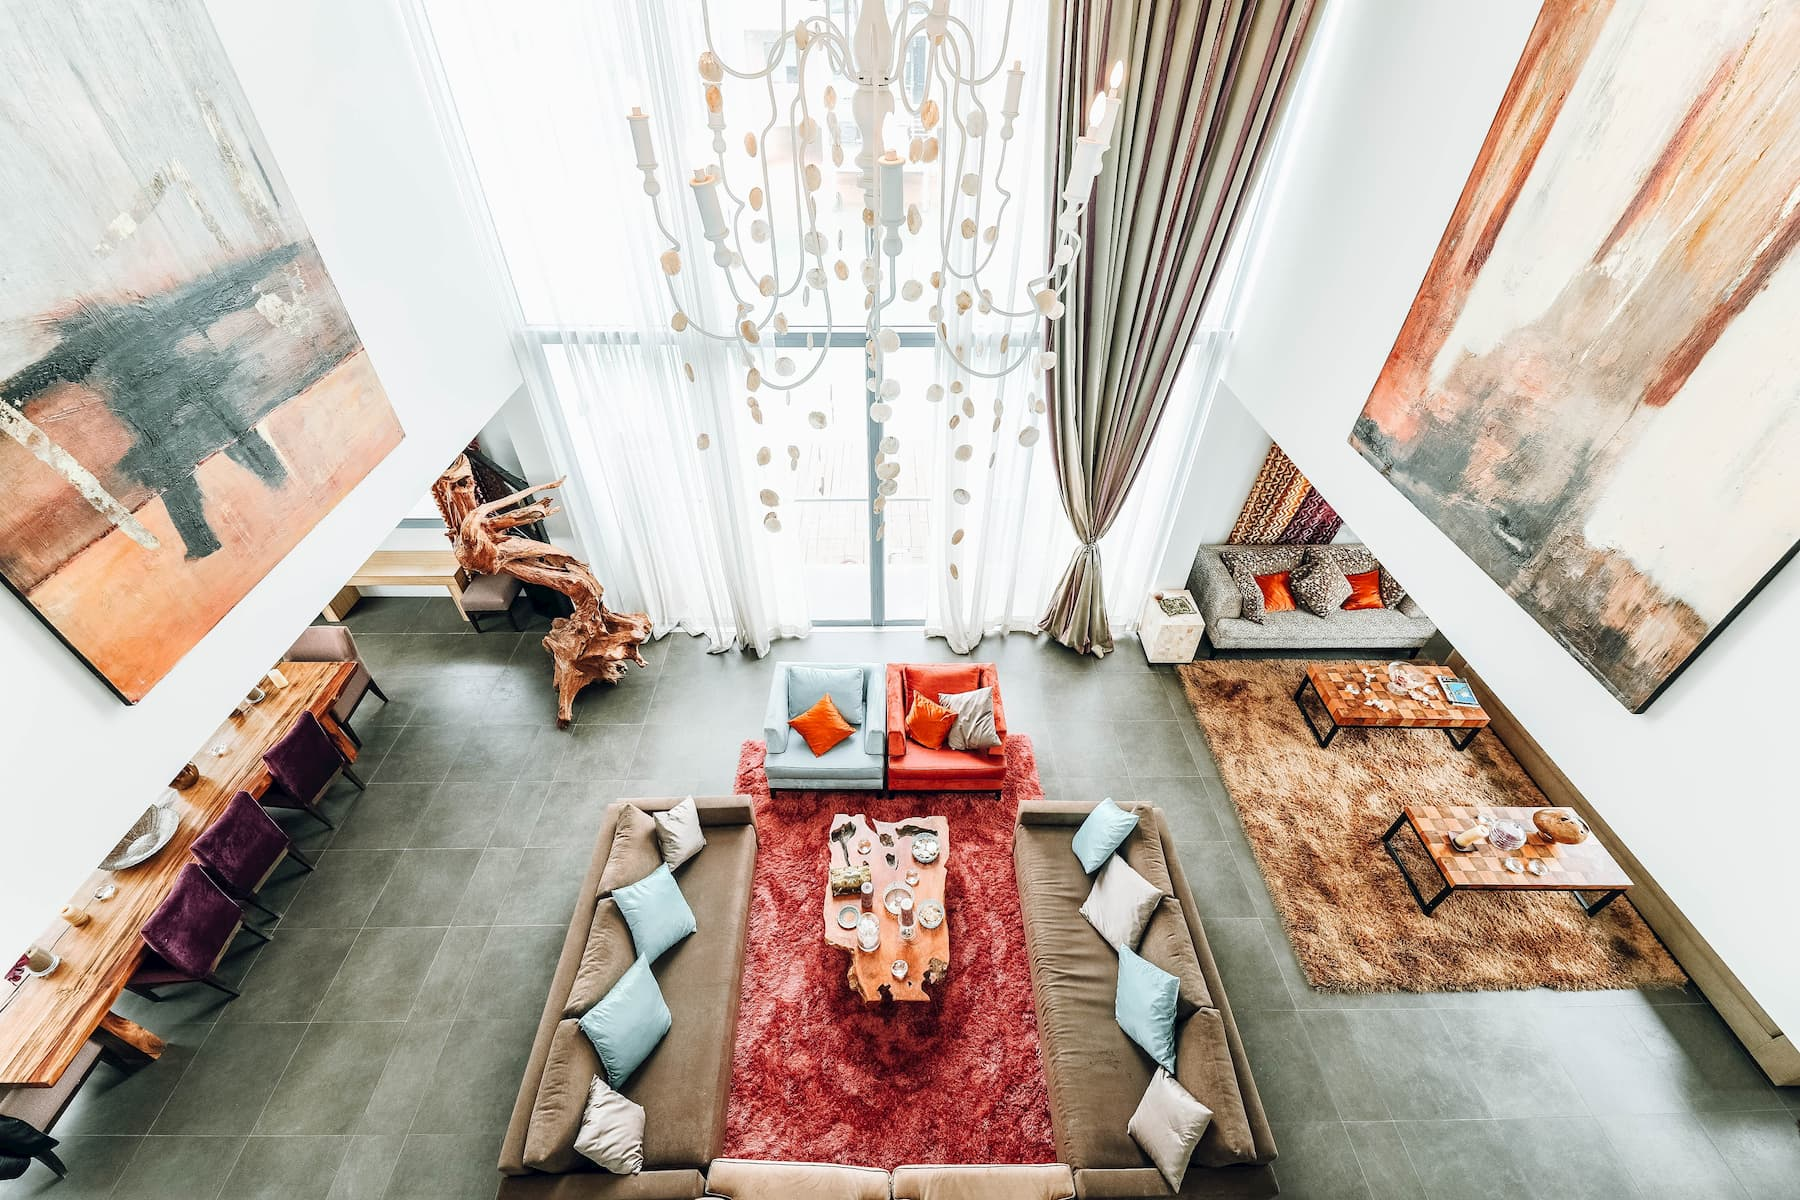 Overlooking a large living room with sofas, armchairs, and shag carpets in red and earth tones